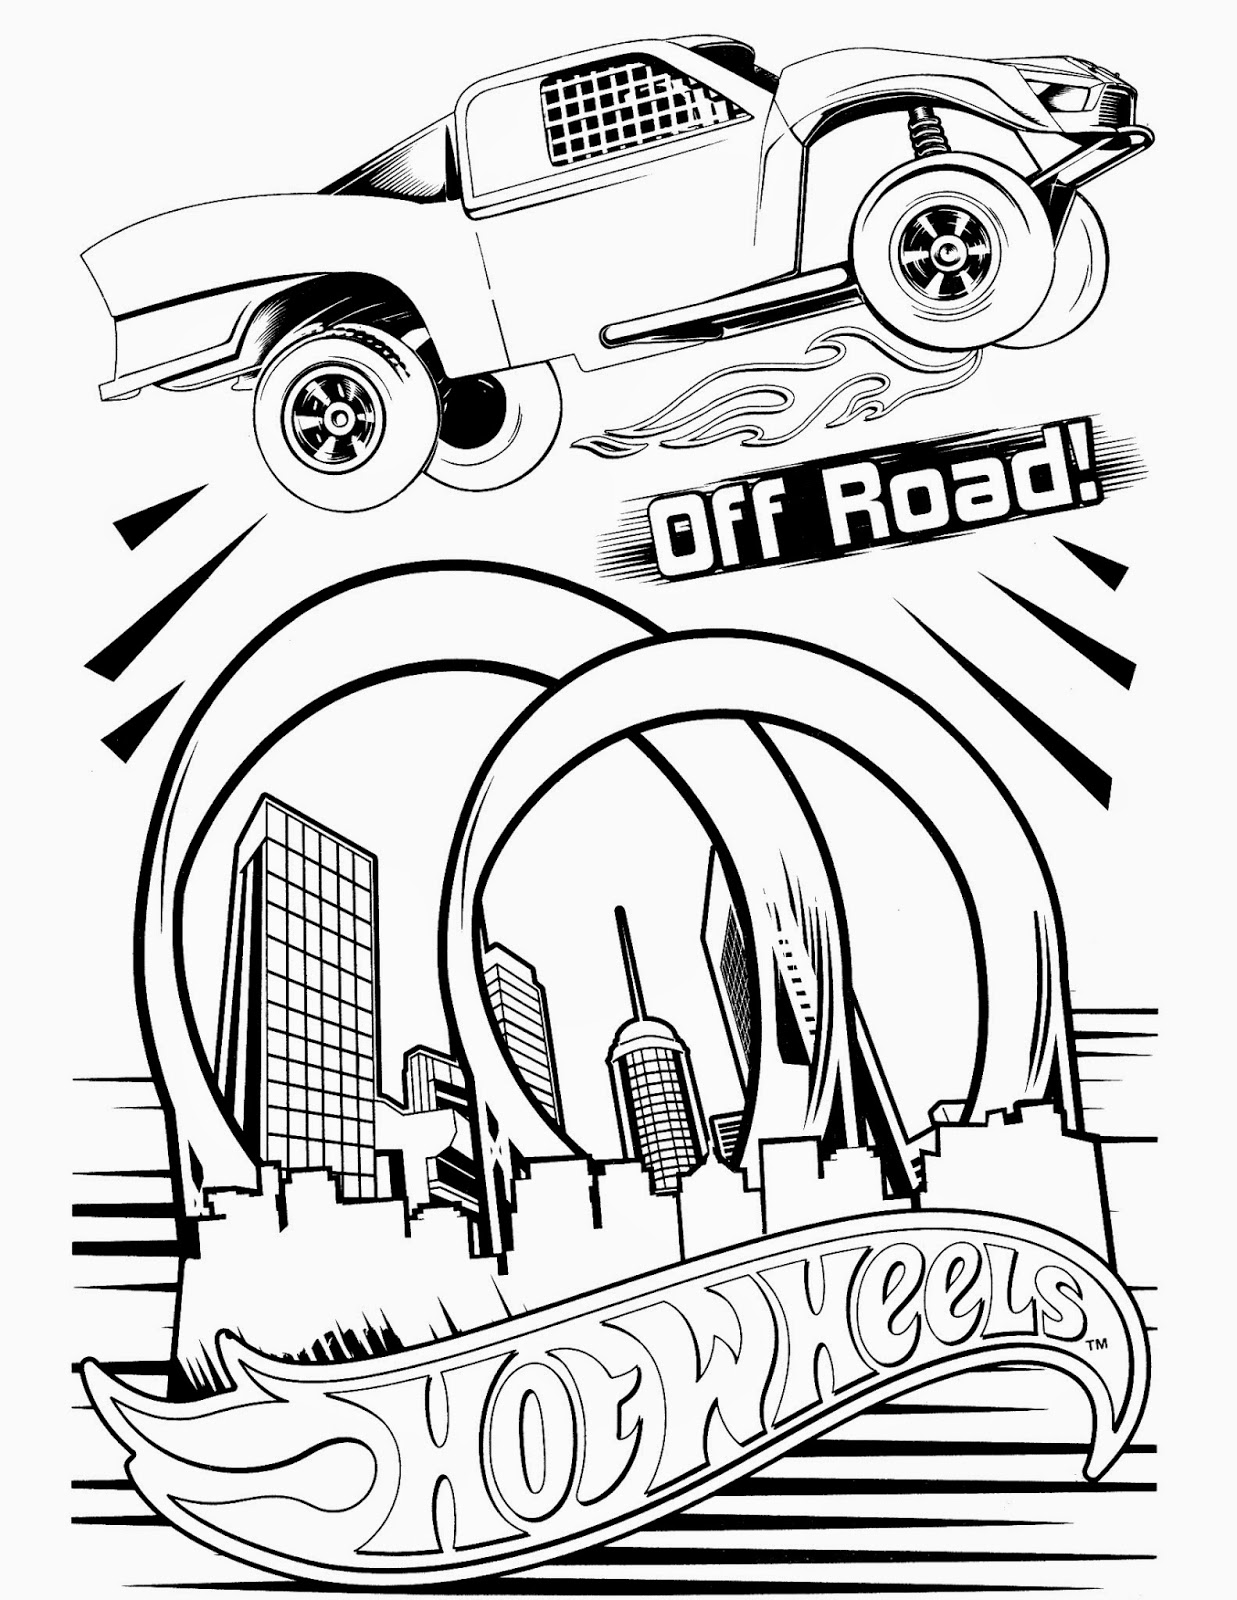 hotwheels colouring pages hot wheels racing league hot wheels coloring pages set 4 hotwheels colouring pages